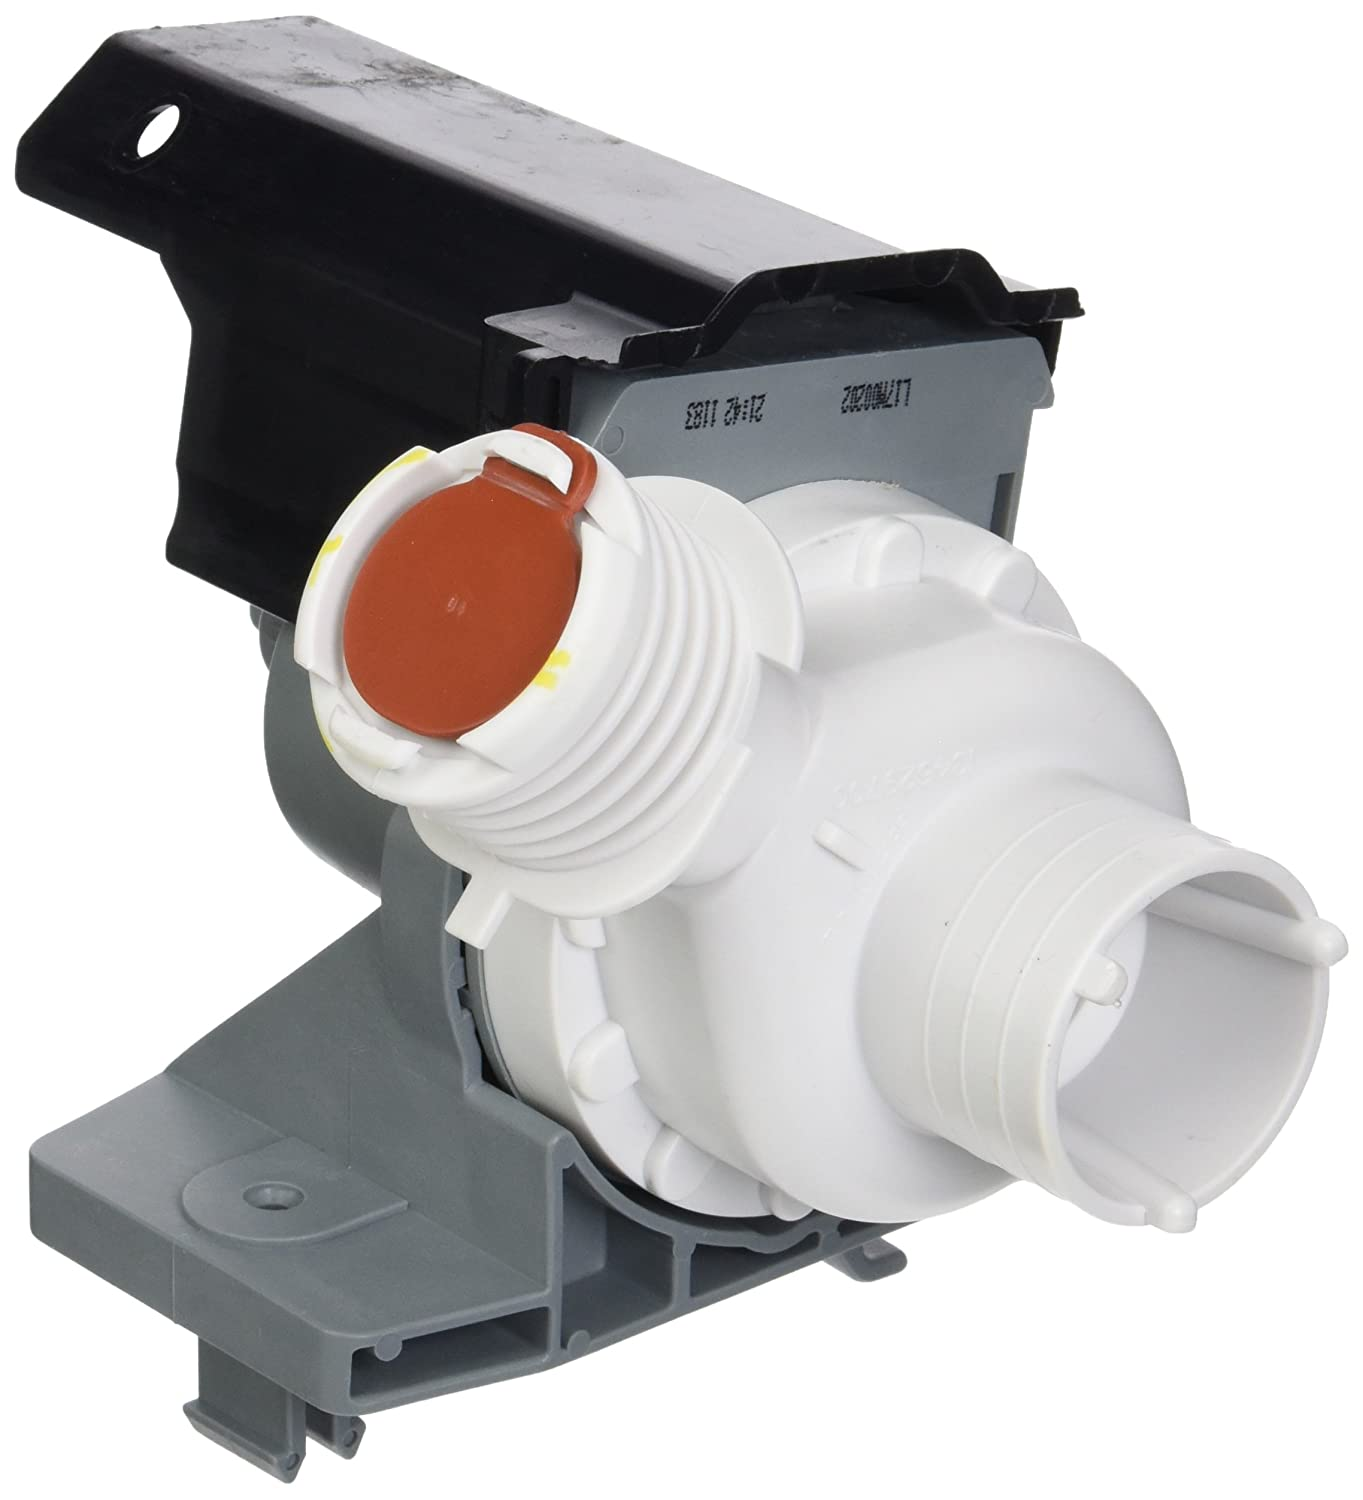 81pQHF2Fd L._SL1500_ amazon com electrolux 137240800 washer drain pump home improvement  at mifinder.co